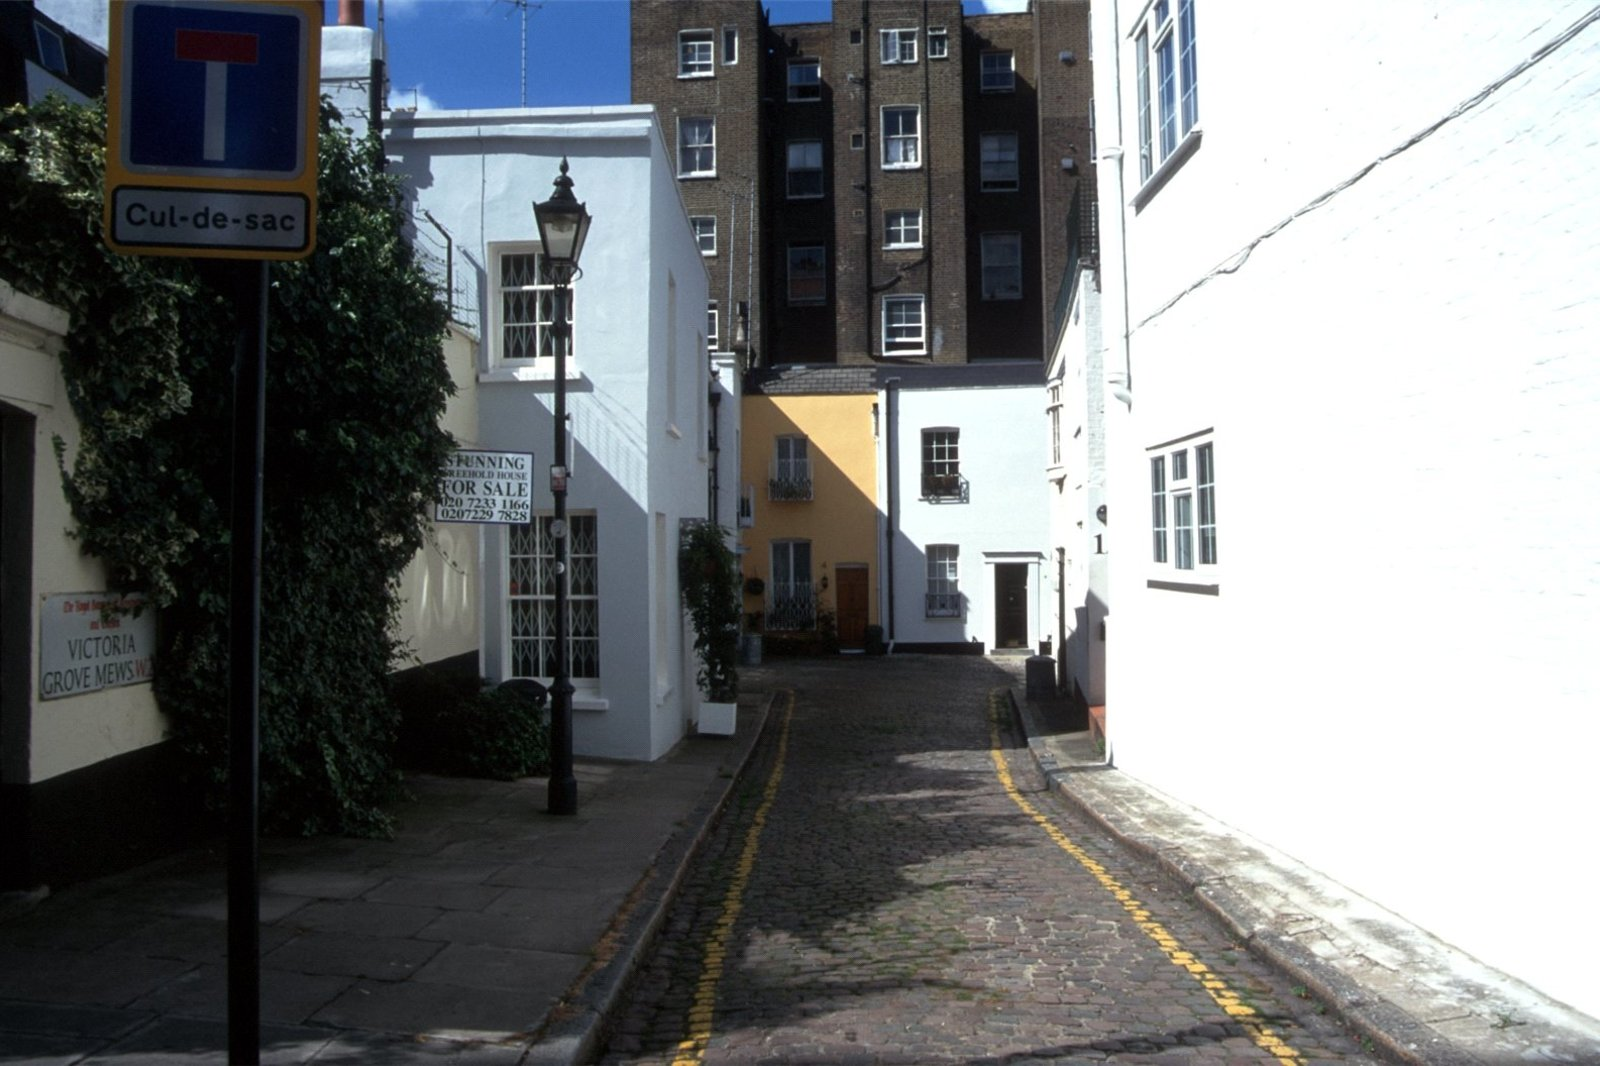 Victoria Grove Mews, Notting Hill, London, W2-6